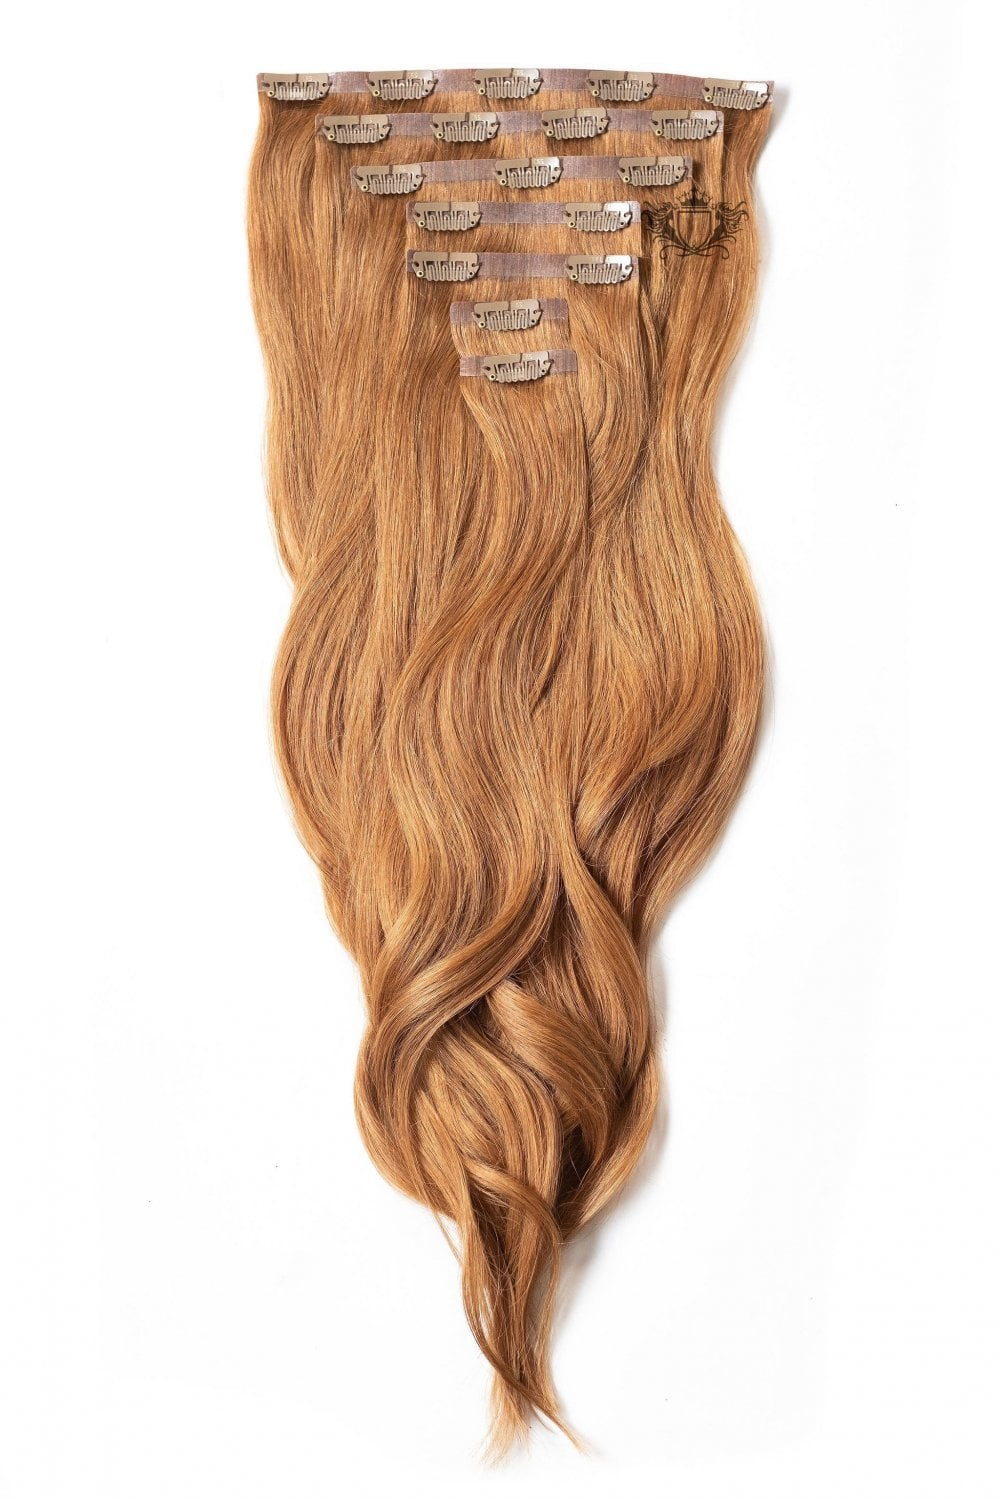 Mahogany Superior Seamless 22 Clip In Human Hair Extensions